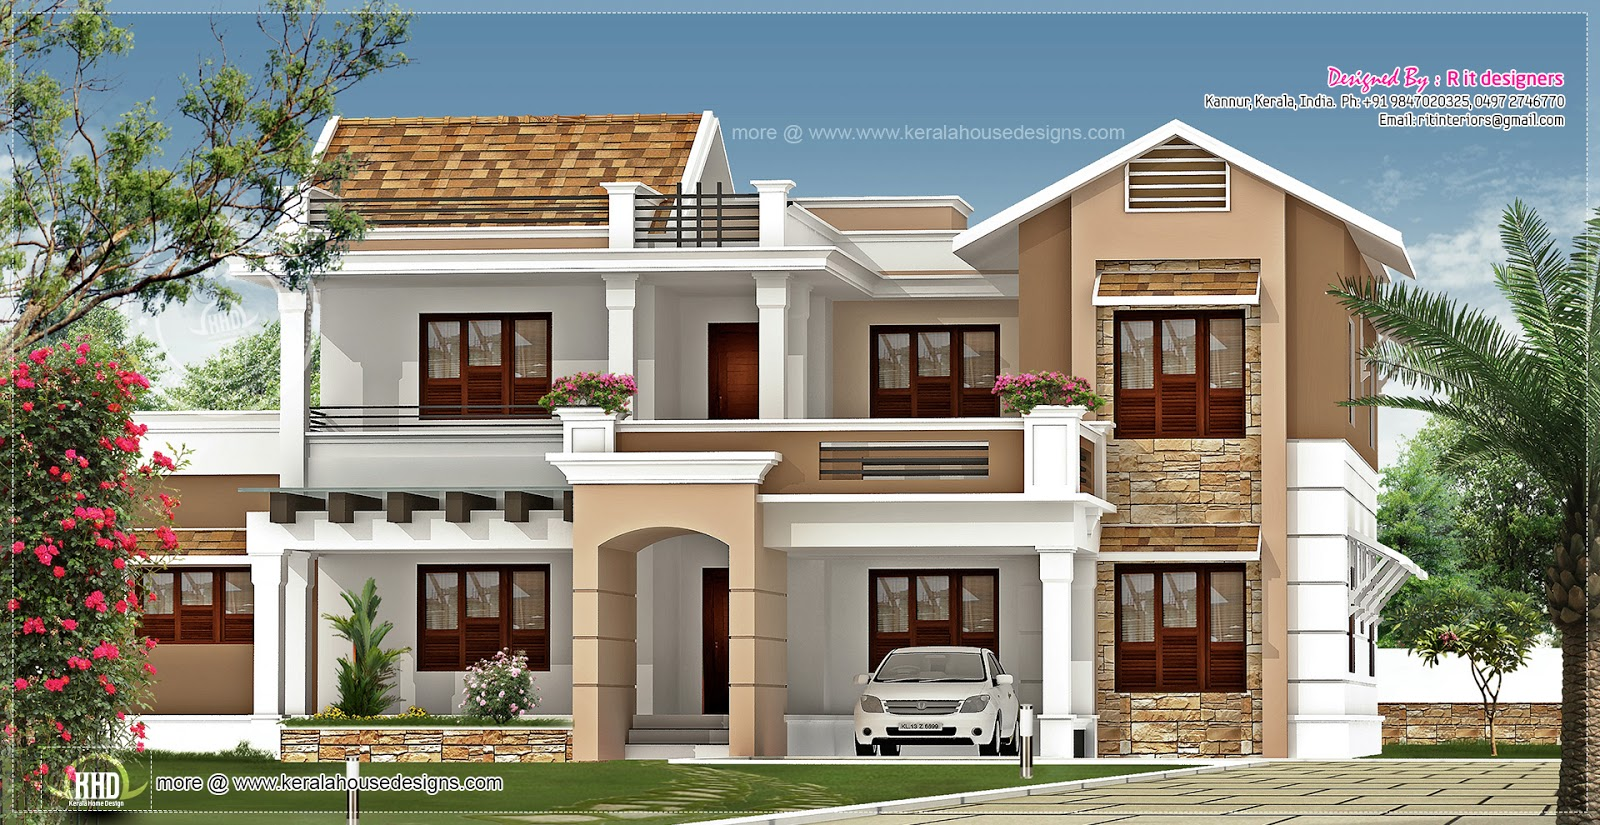 New villa exterior design in 3740 house design plans for New home designs pictures